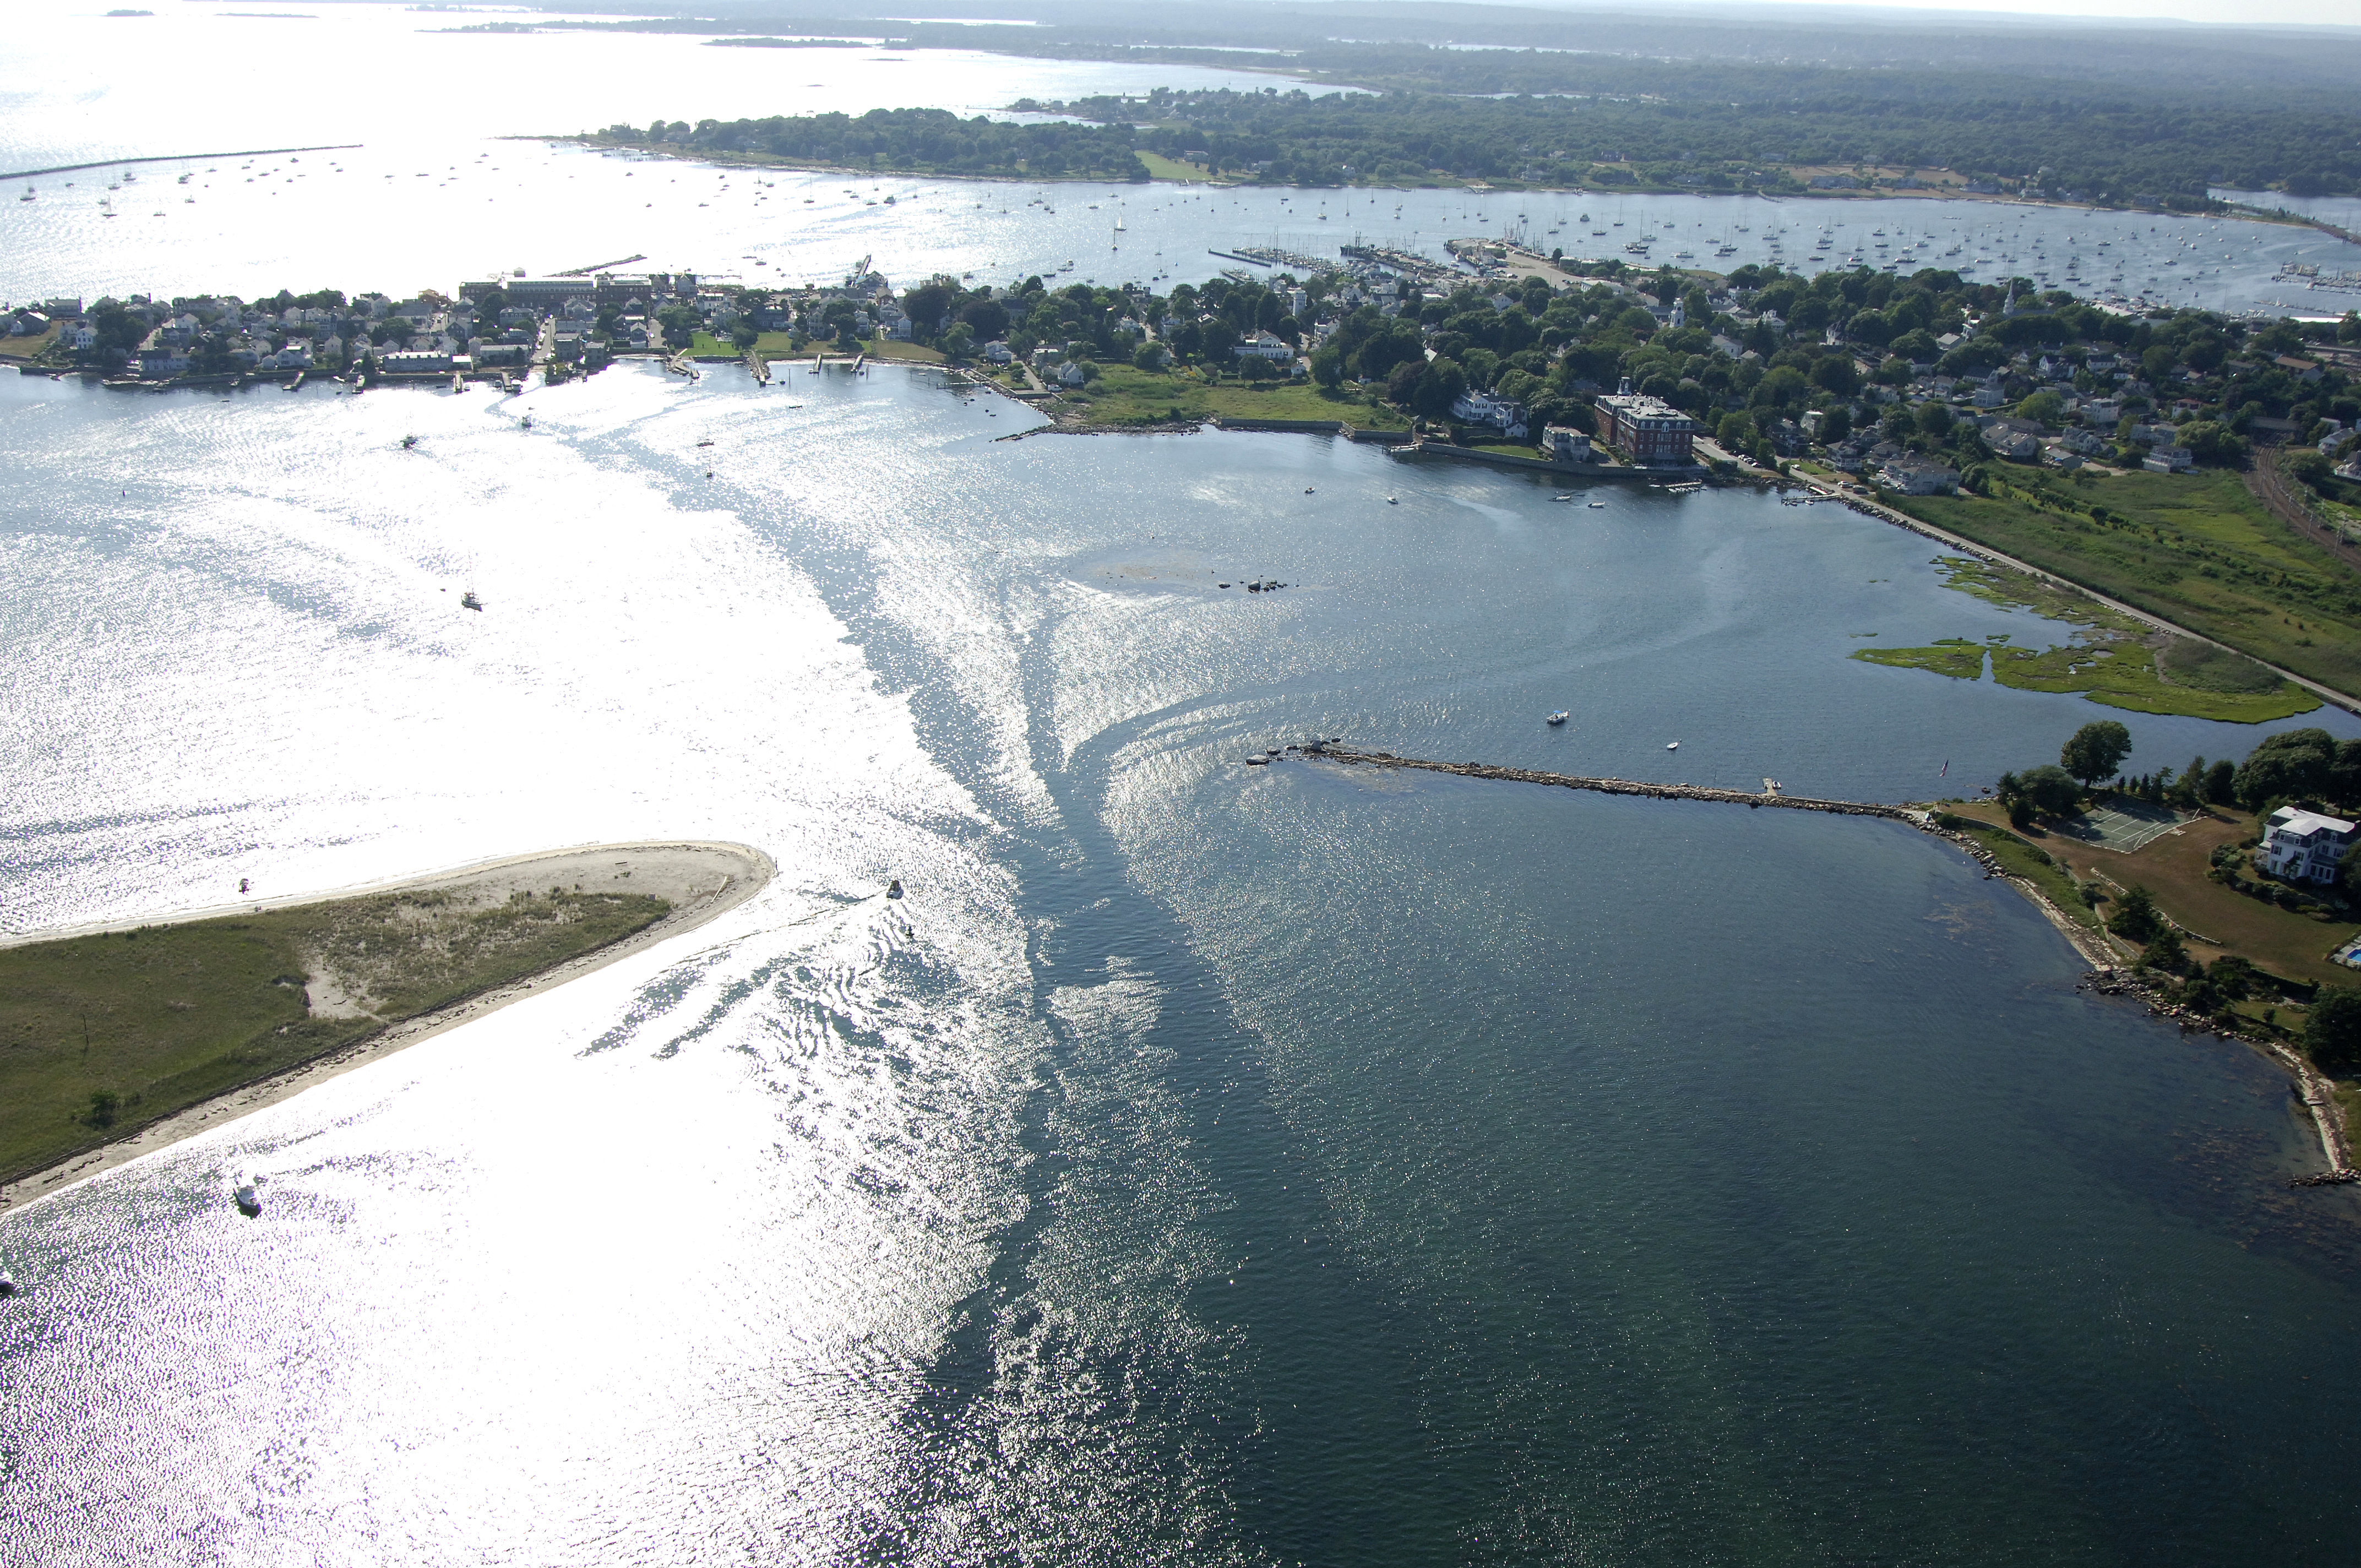 Little narragansett bay inlet in stonington ct united states little narragansett bay inlet nvjuhfo Image collections